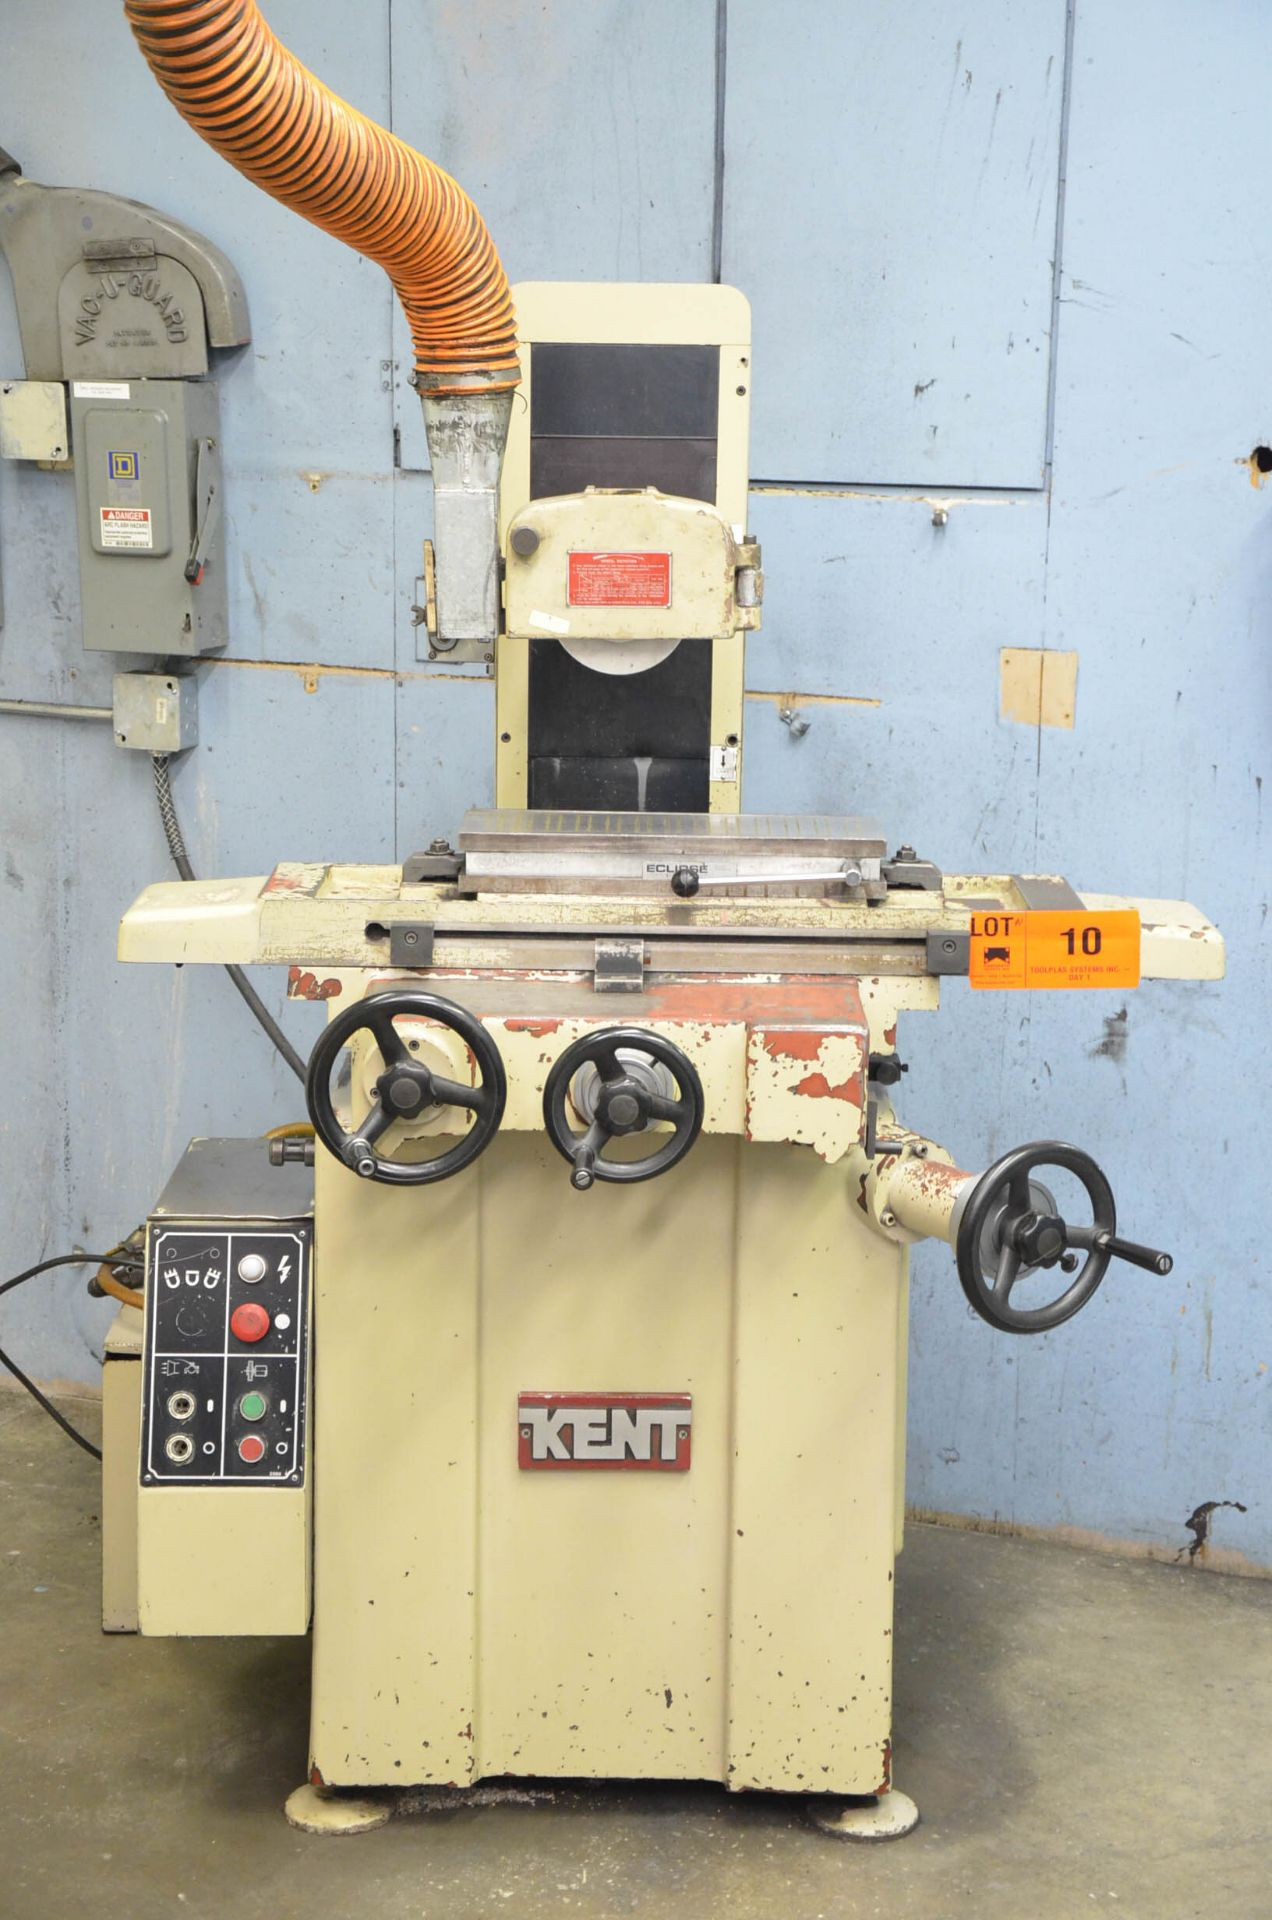 """KENT KGS-200 CONVENTIONAL SURFACE GRINDER WITH 6""""X18"""" MAGNETIC CHUCK, 8"""" WHEEL, INCREMENTAL DOWN- - Image 2 of 4"""